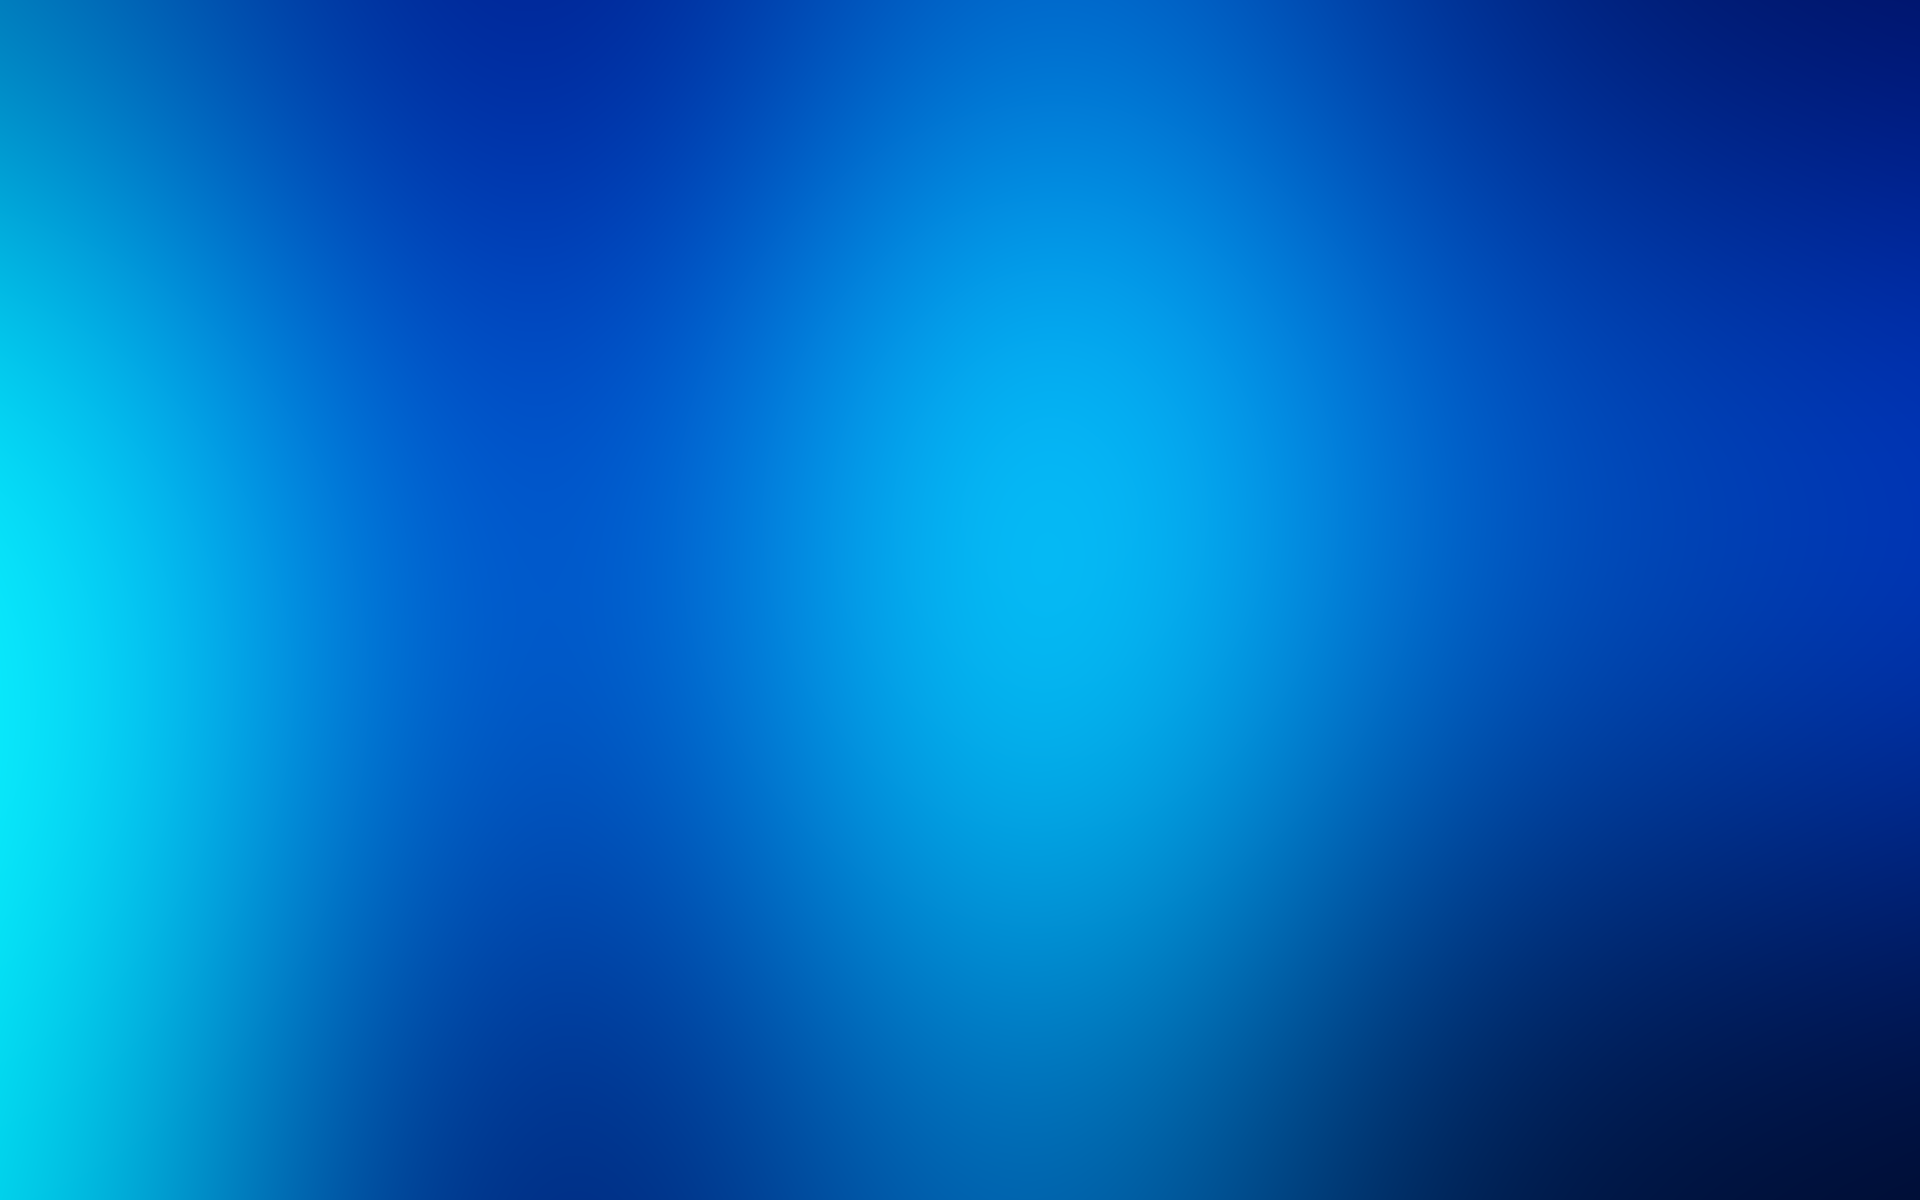 blue-backgrounds_00396566.png